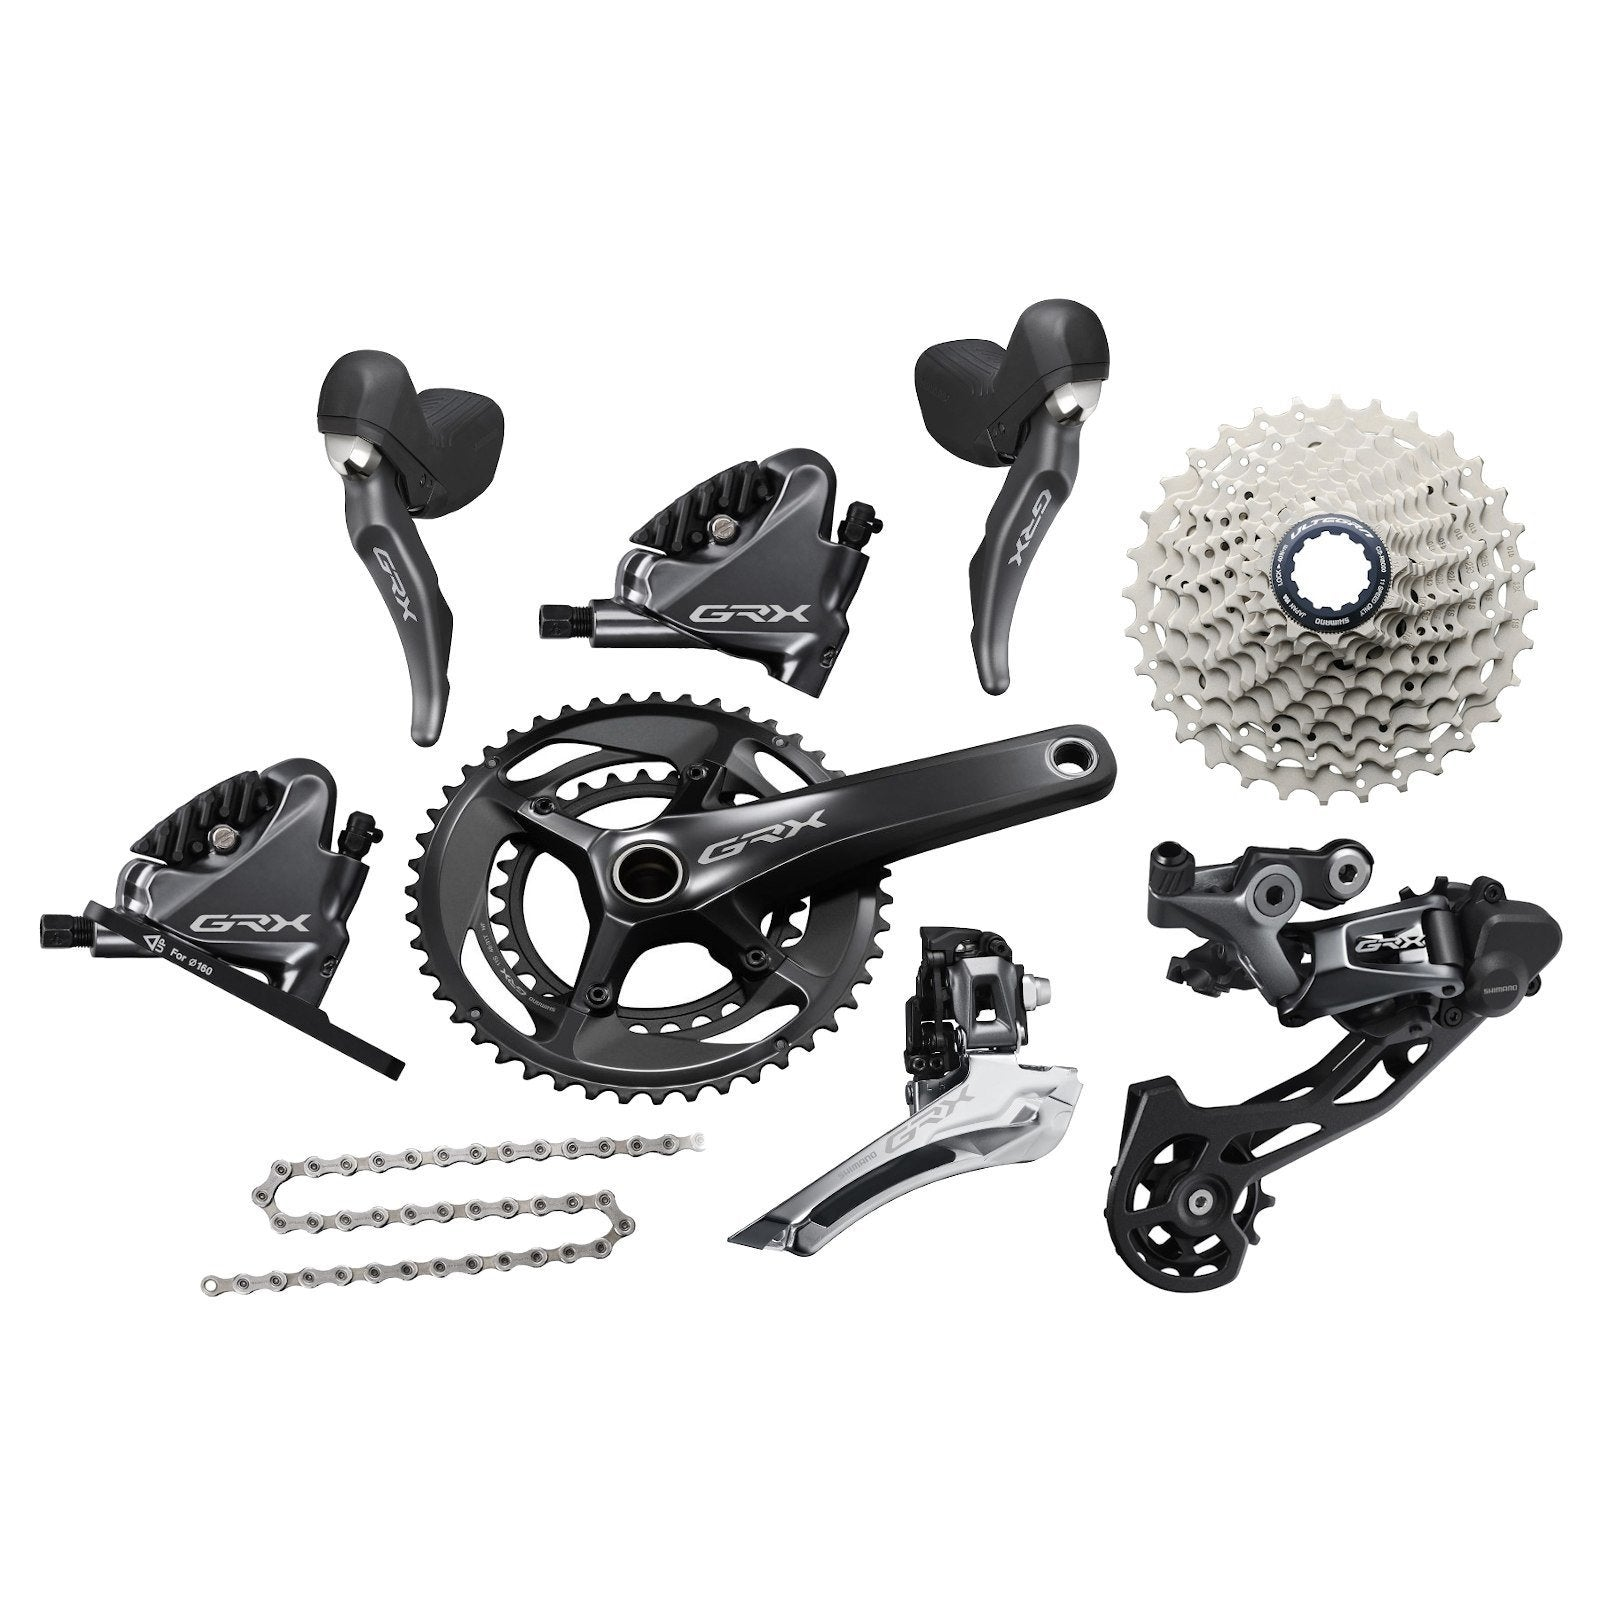 Shimano Components > Groupsets Shimano GRX RX800 2 x 11 Groupset